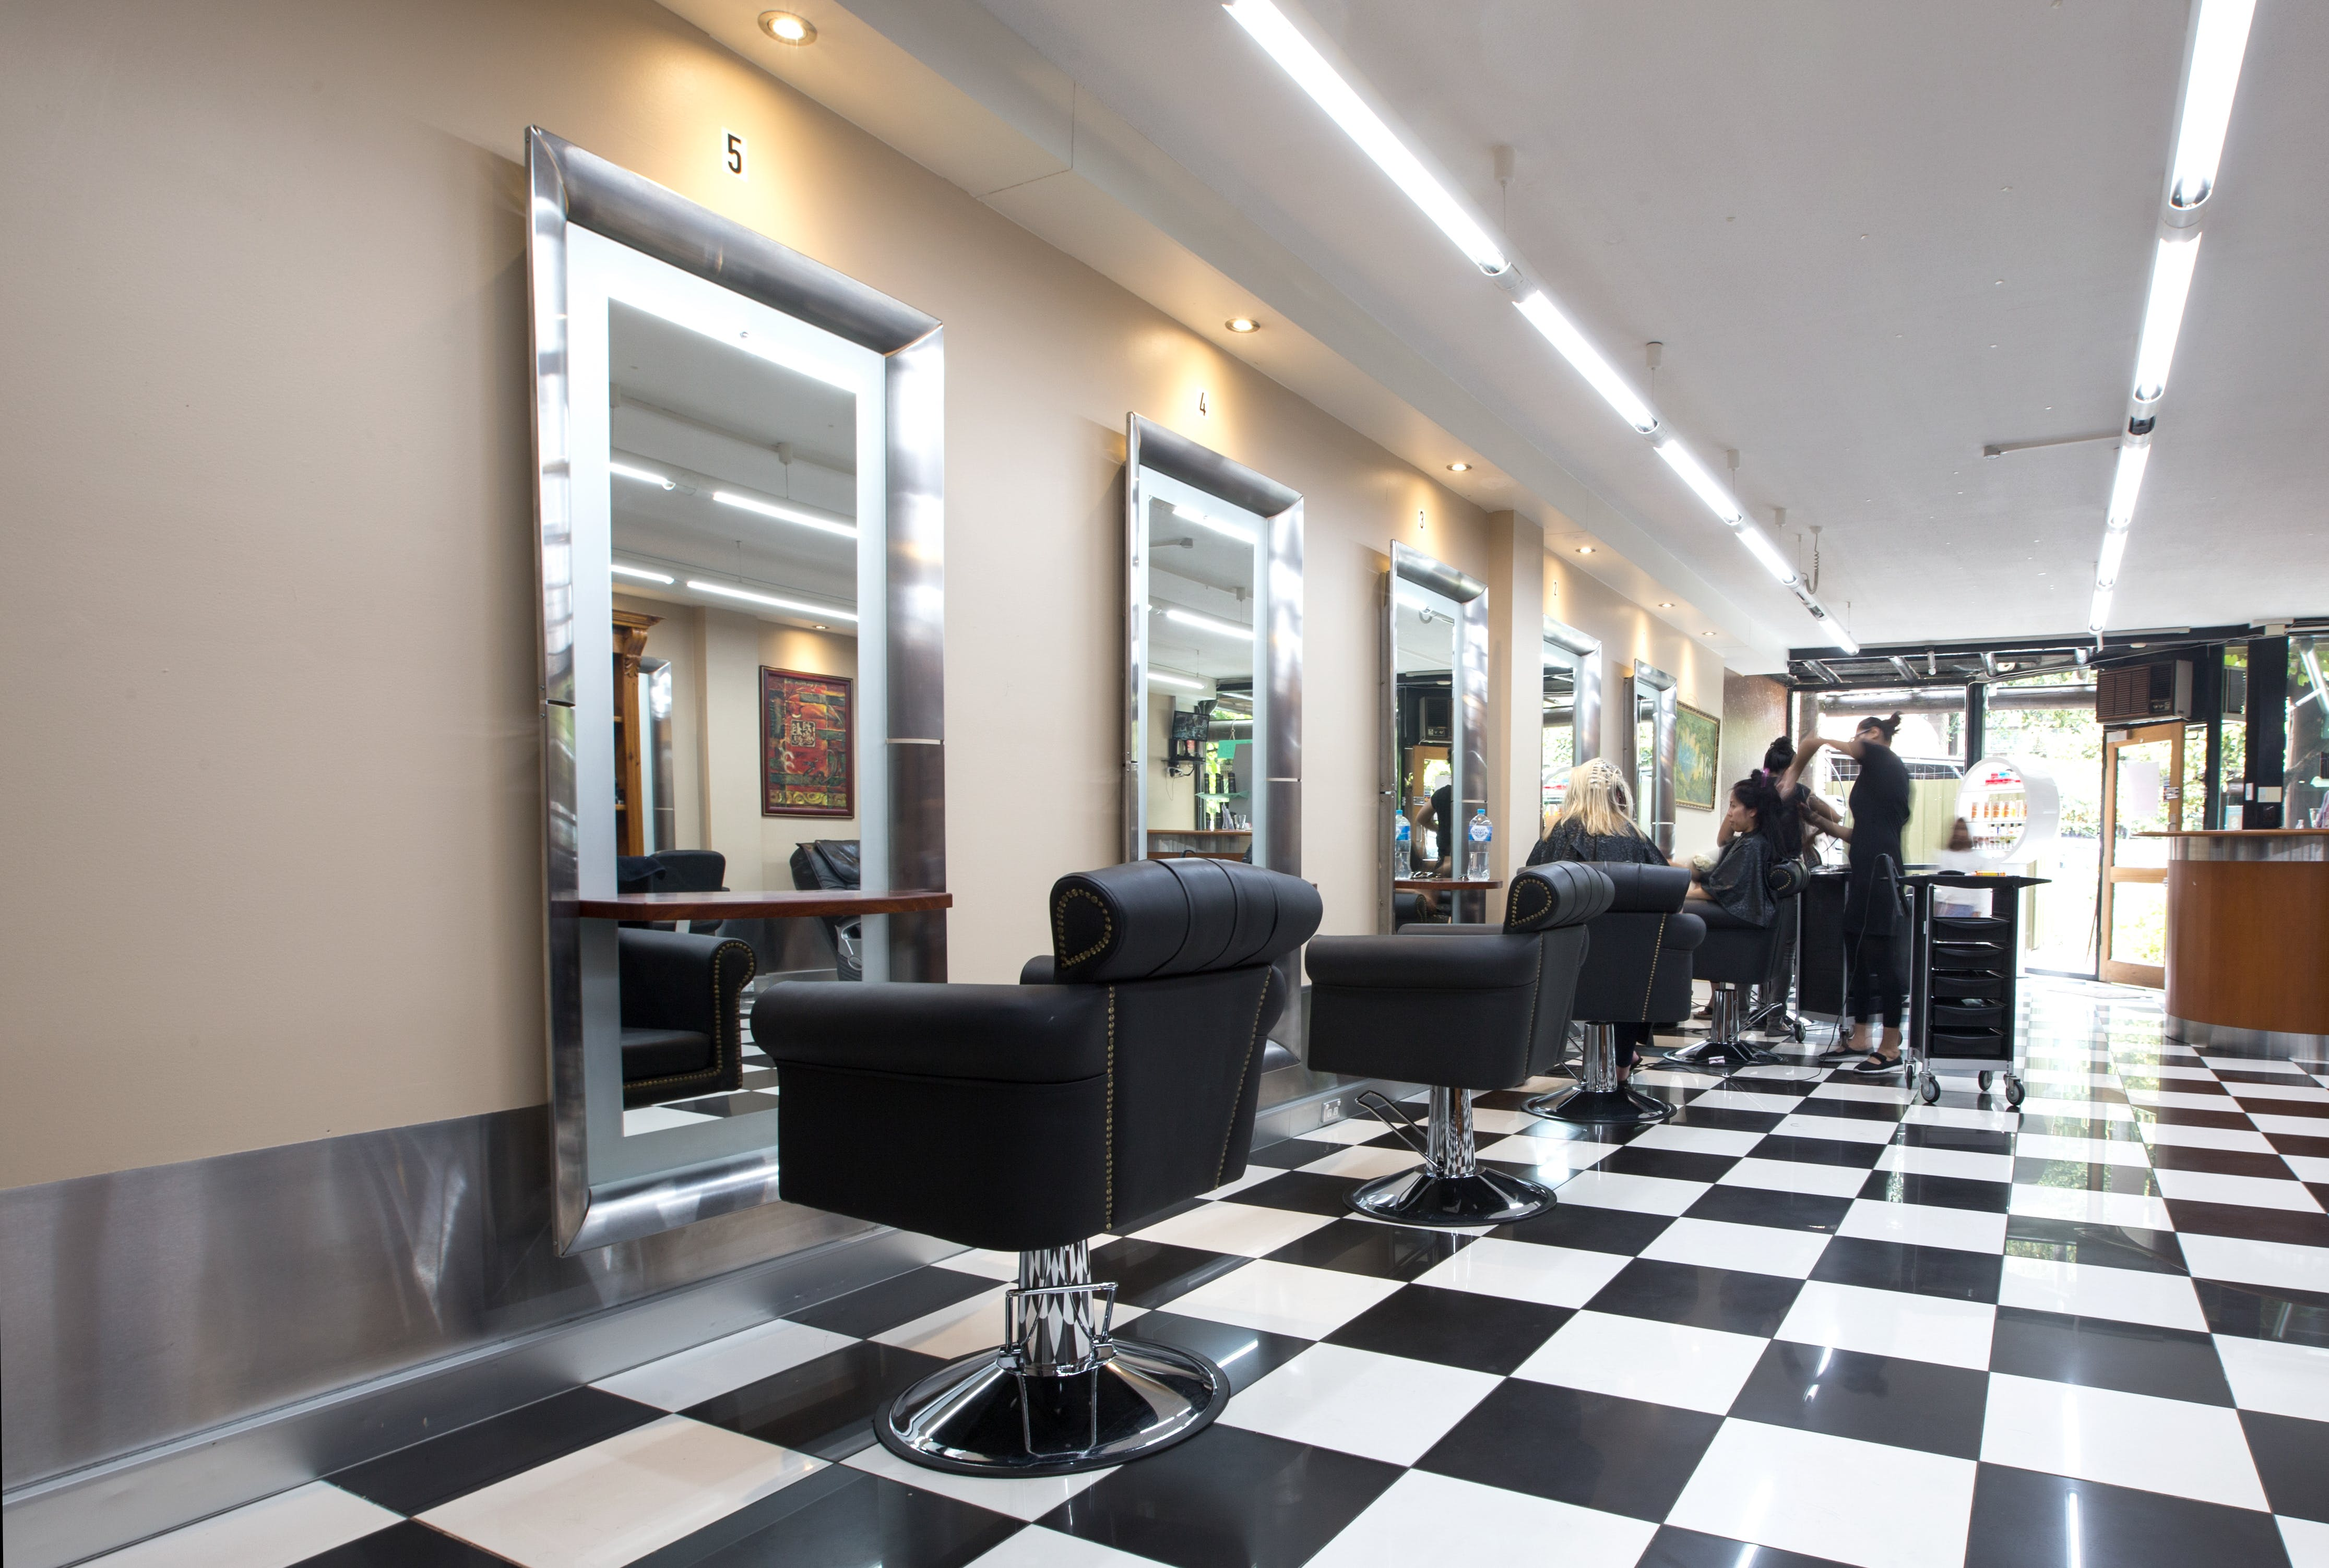 Compare and book Haircut and Hairdressing services near North Adelaide, SA